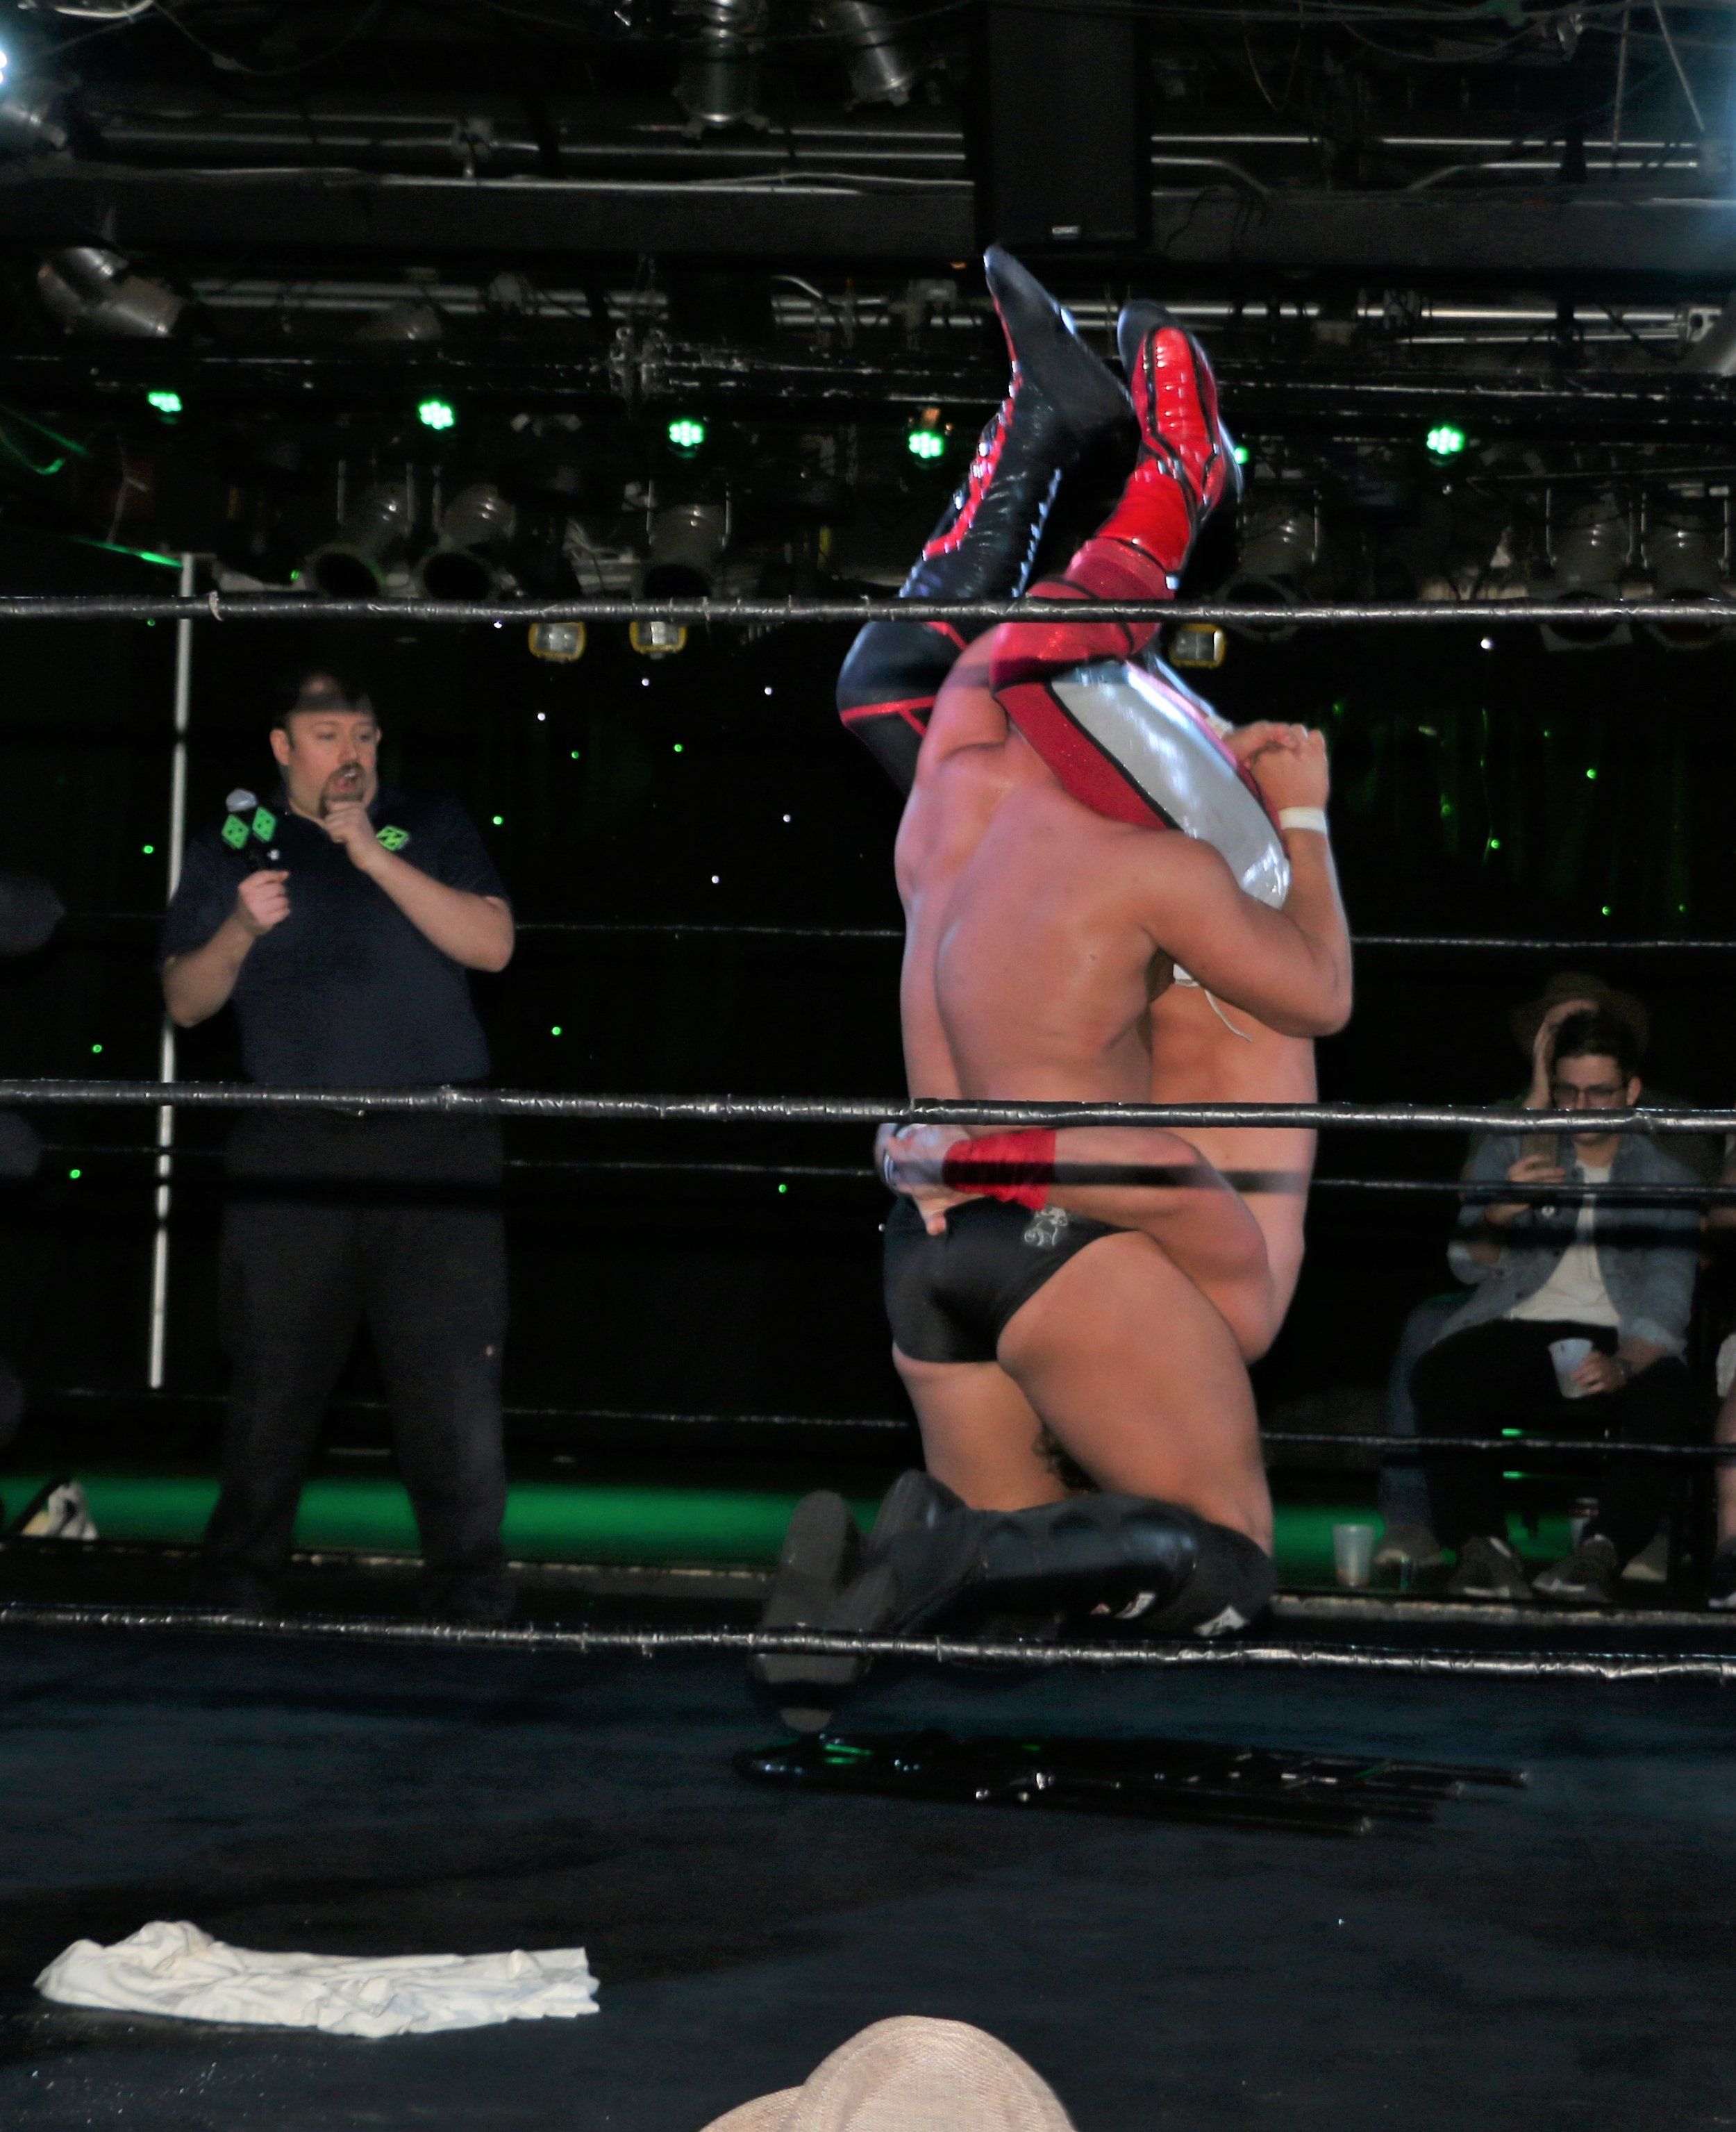 Simon Grimm puts Pat Monix in the tombstone piledriver.